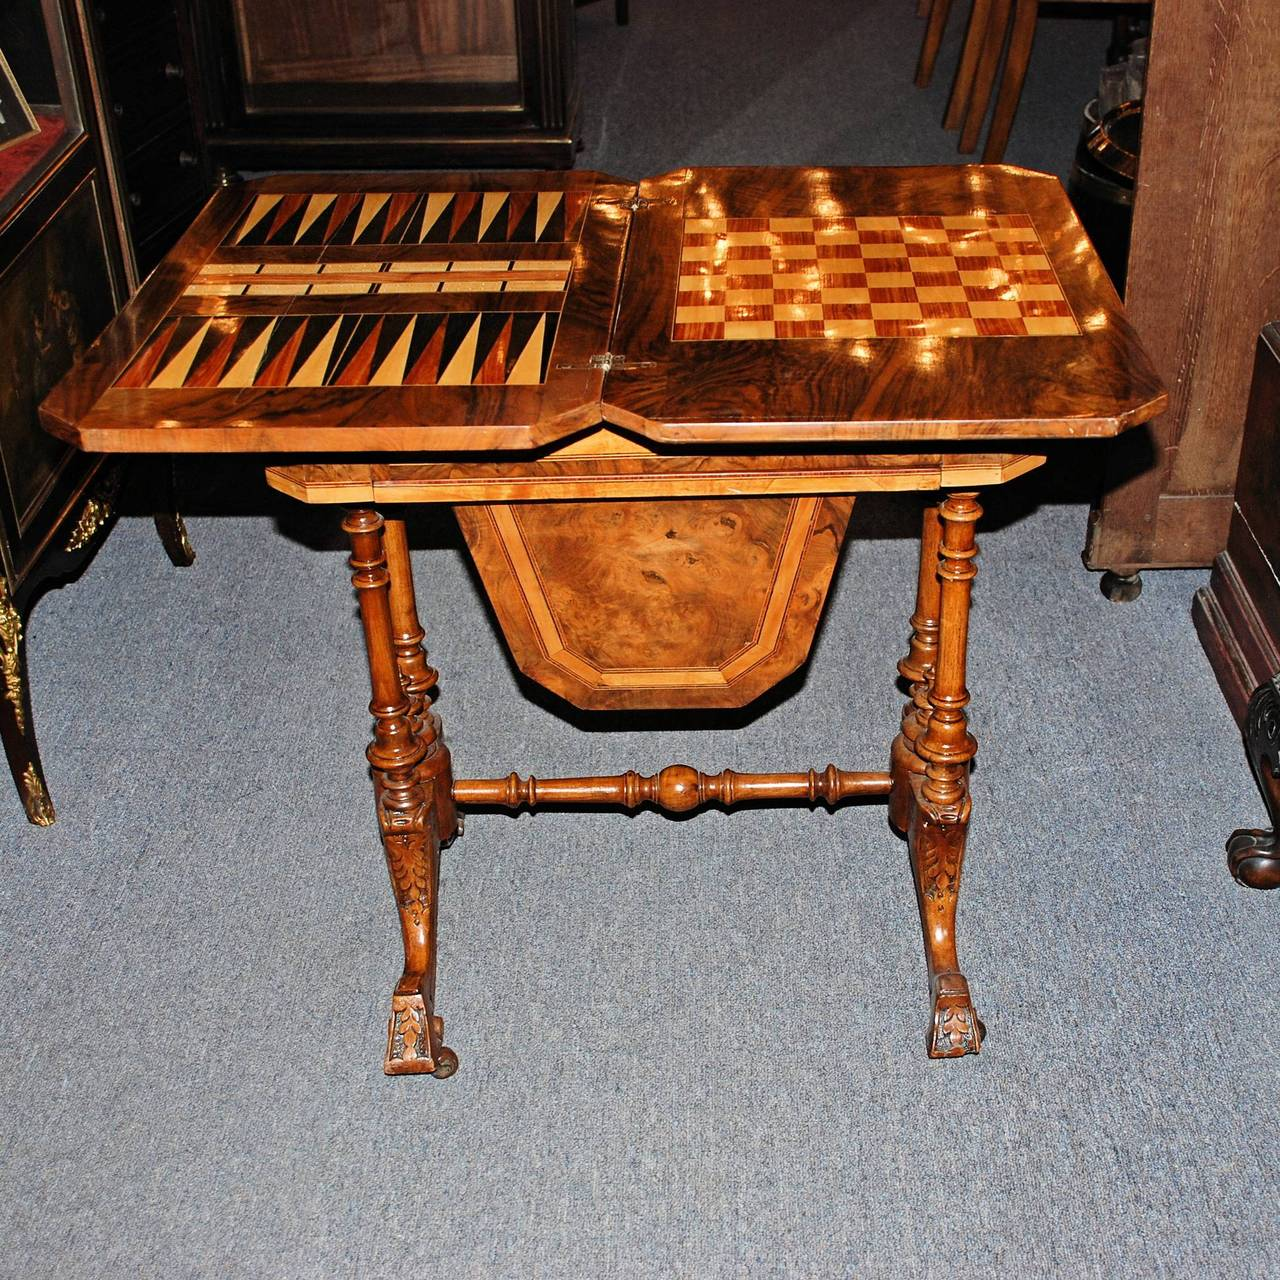 Antique english victorian burled walnut game table in excellent condition for sale in new orleans